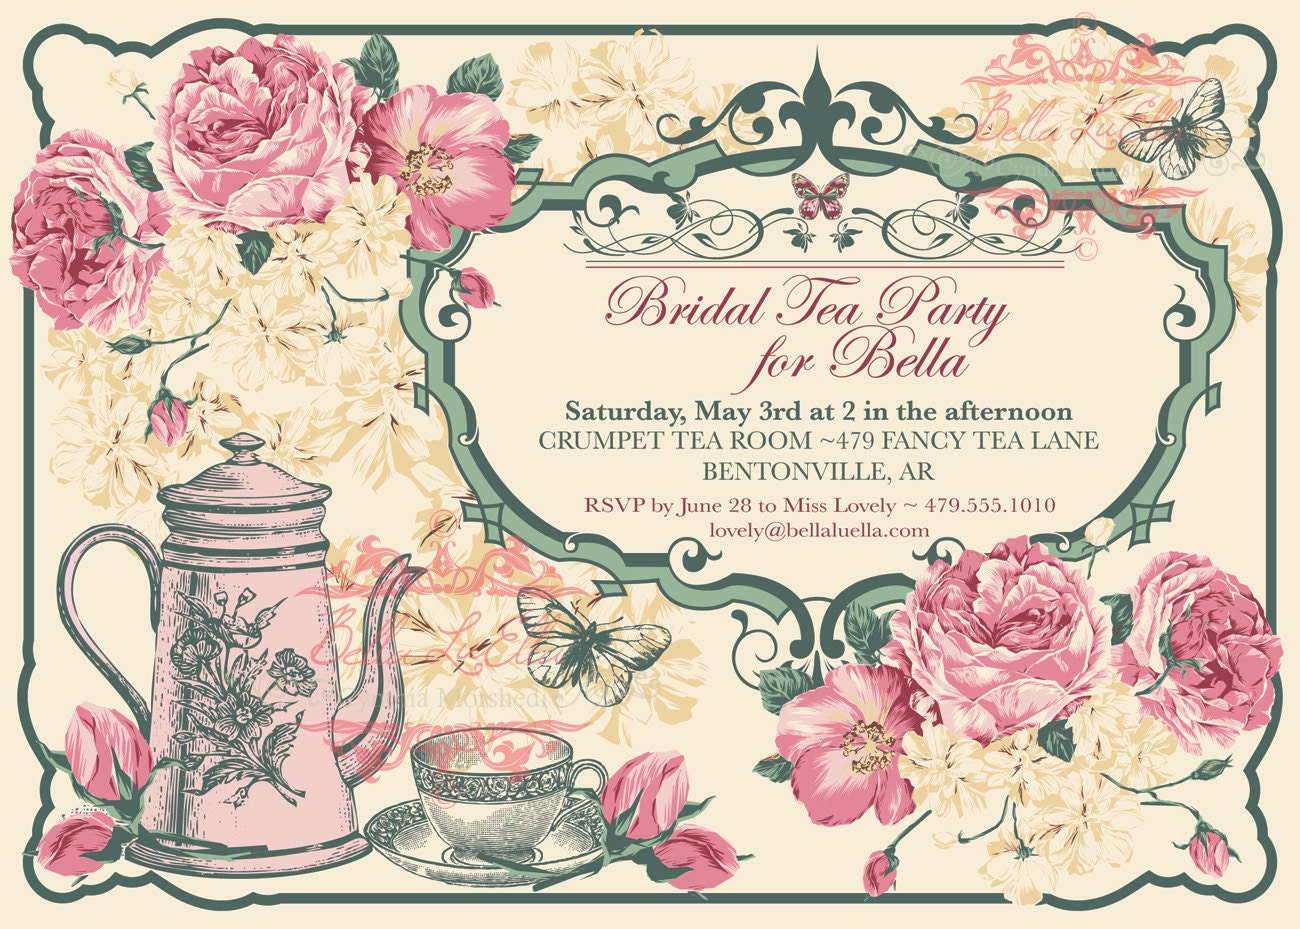 Tea Party Invitation Template - peelland-fm.tk